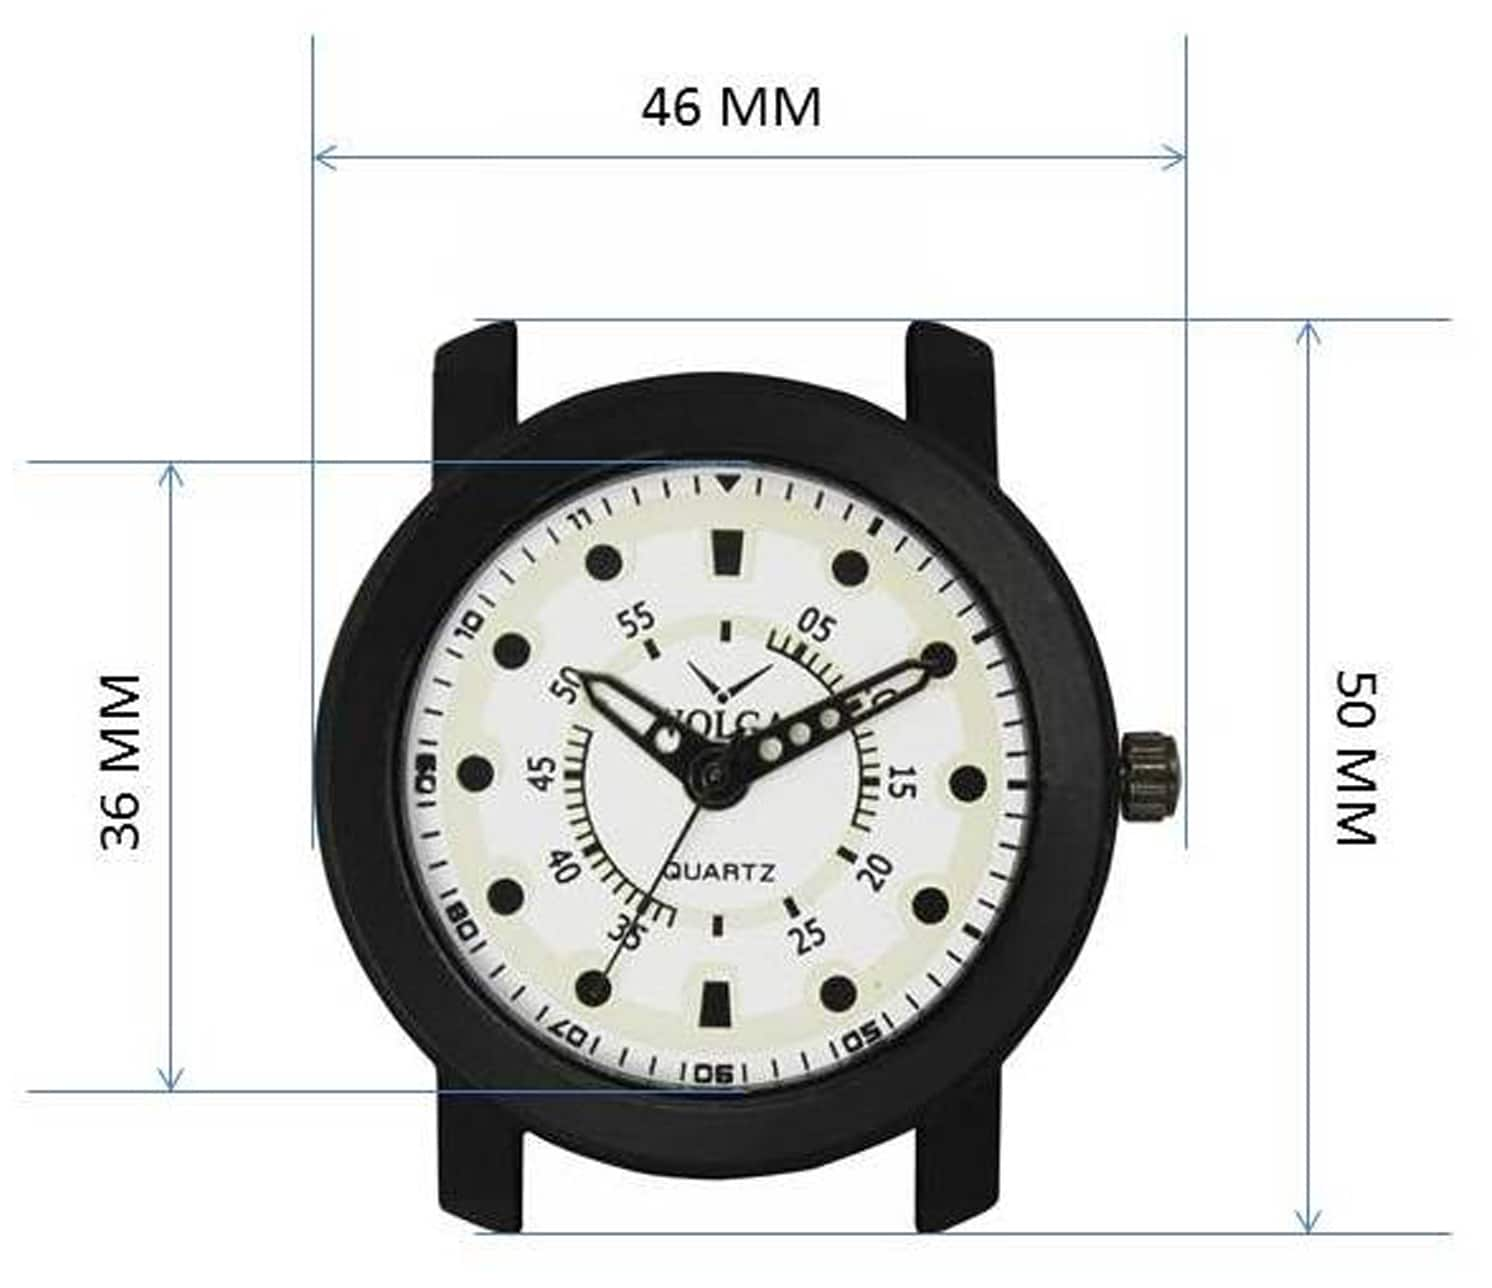 New Analog Type Designer Stylish Watch For Men And Boys_volga-